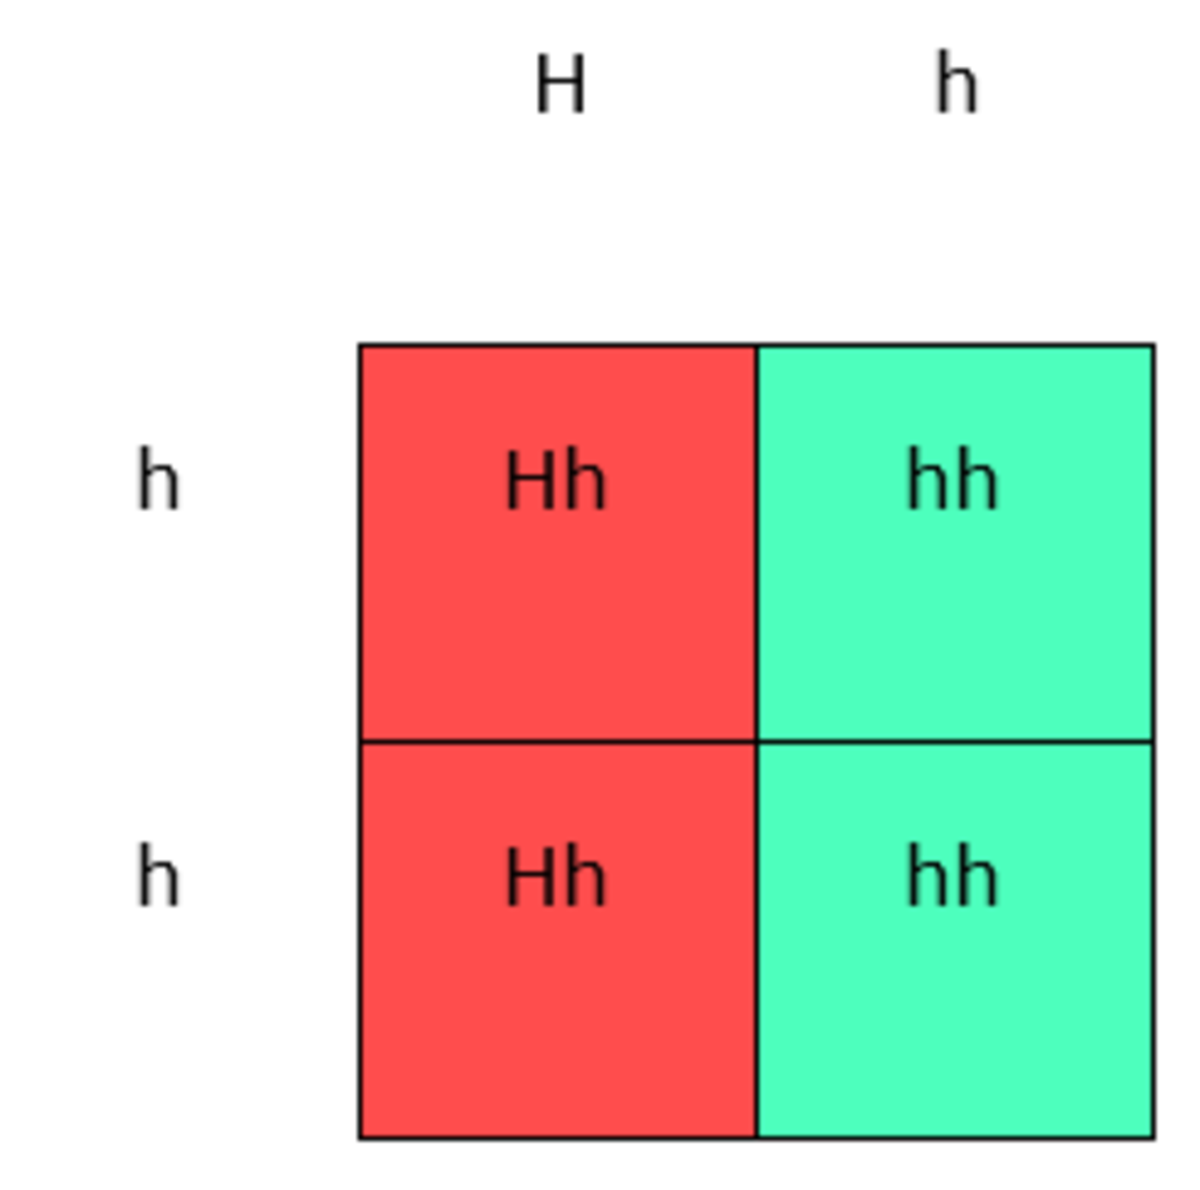 In this Punnett Square, the capital H means the disease is present. Since the HD allele is dominant, only one parent needs to carry it in order for the disease to occur at least 50% of the time.